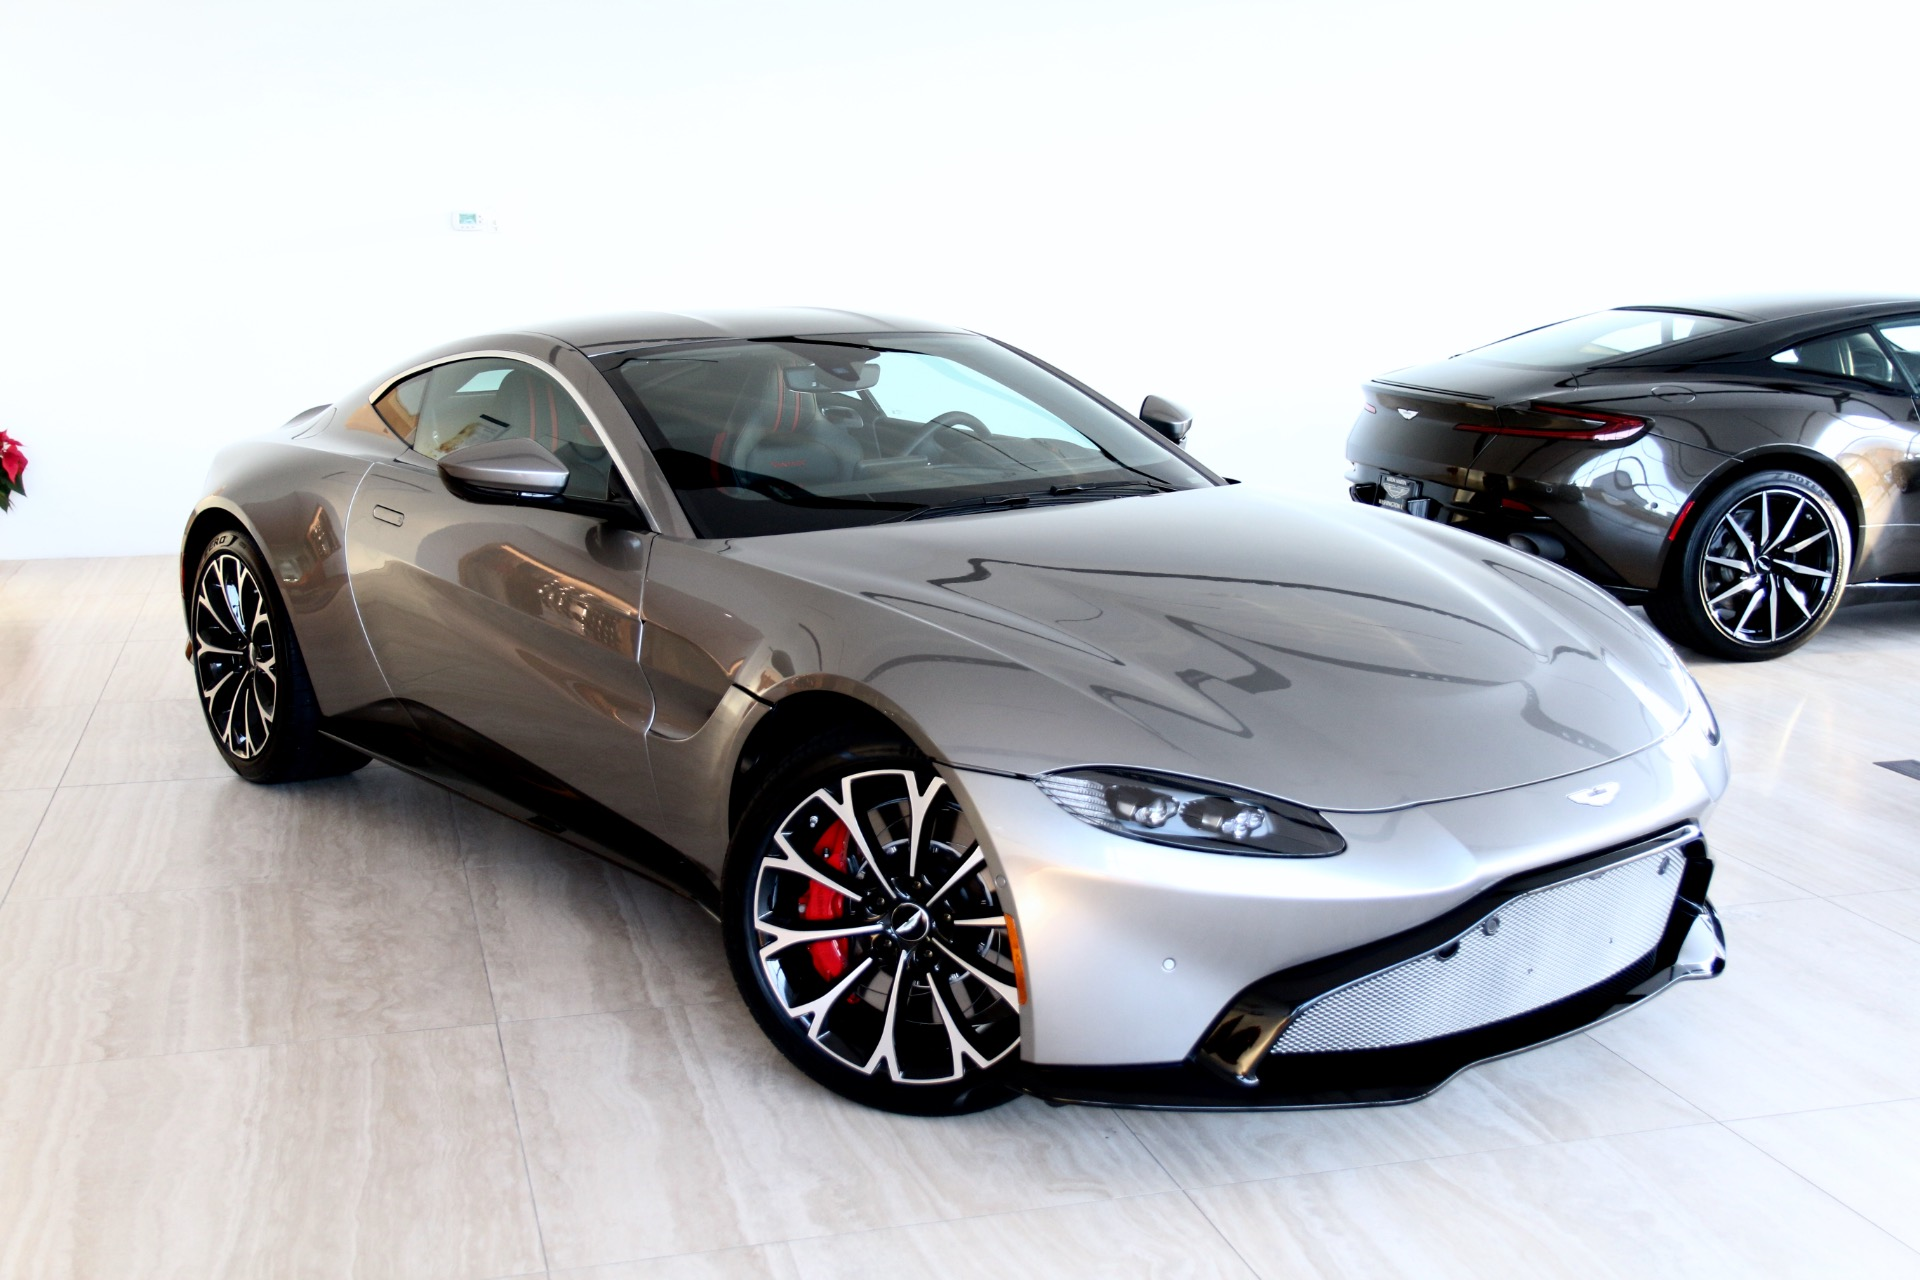 2019 aston martin vantage [taking orders] stock # 9nx85250 for sale